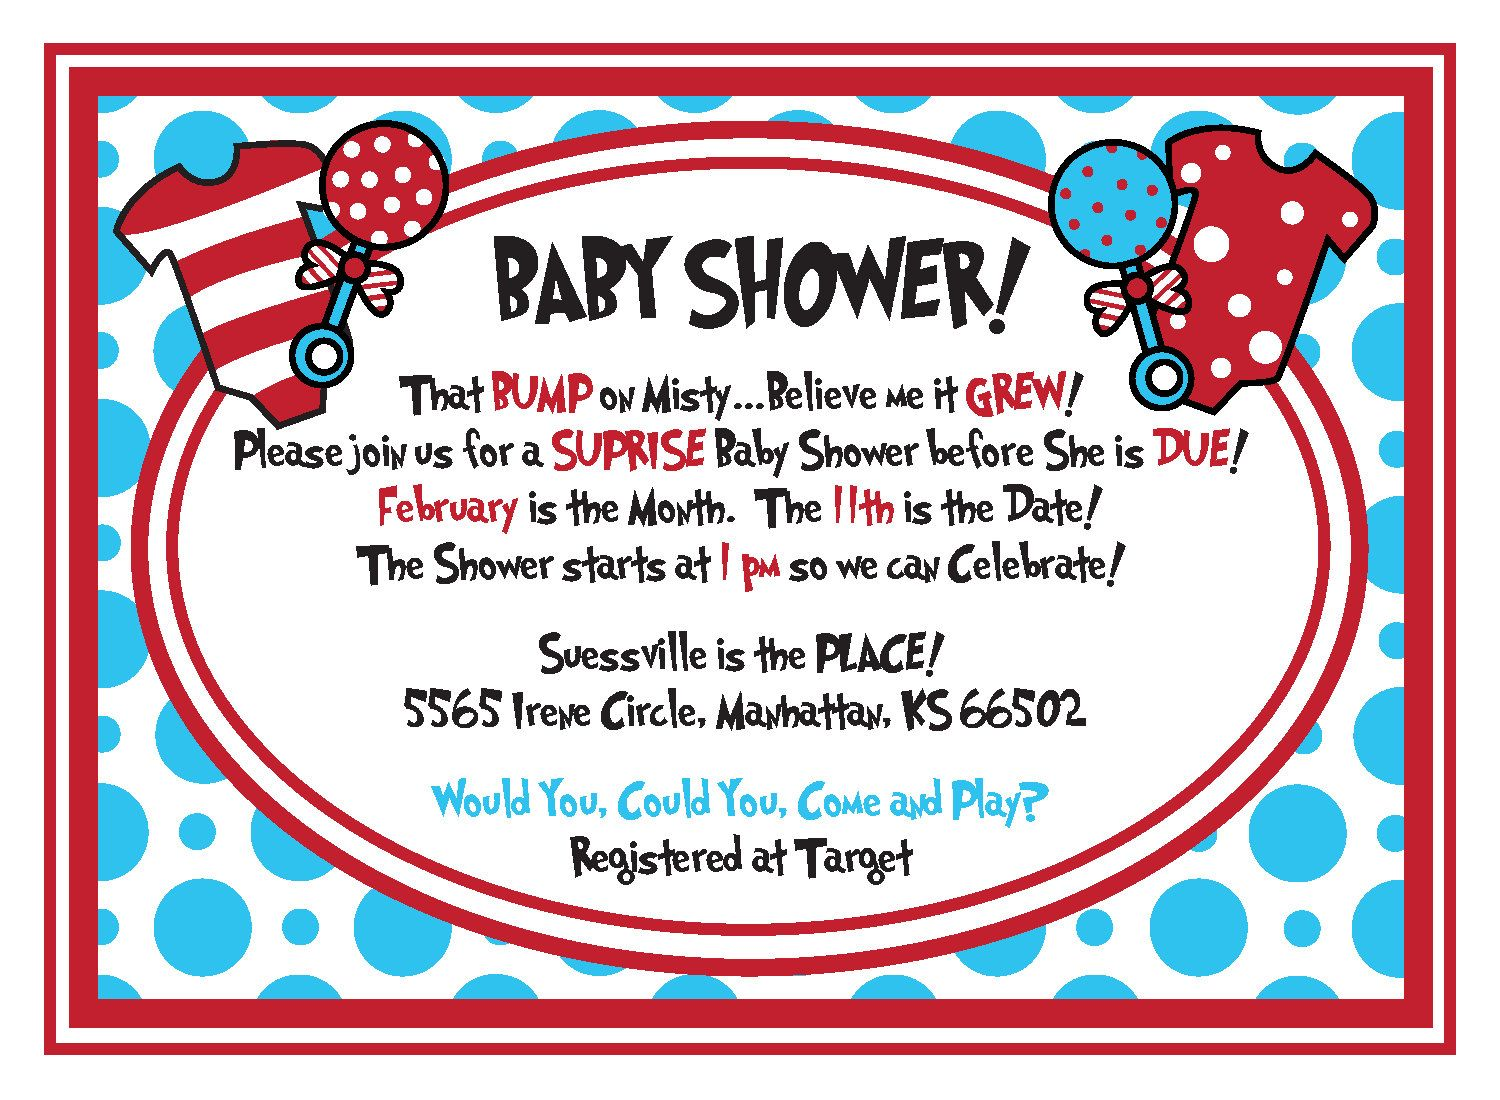 Download Now Free Dr Seuss Baby Shower Invitation Psd Template Seuss Baby Shower Dr Seuss Baby Shower Suess Baby Shower